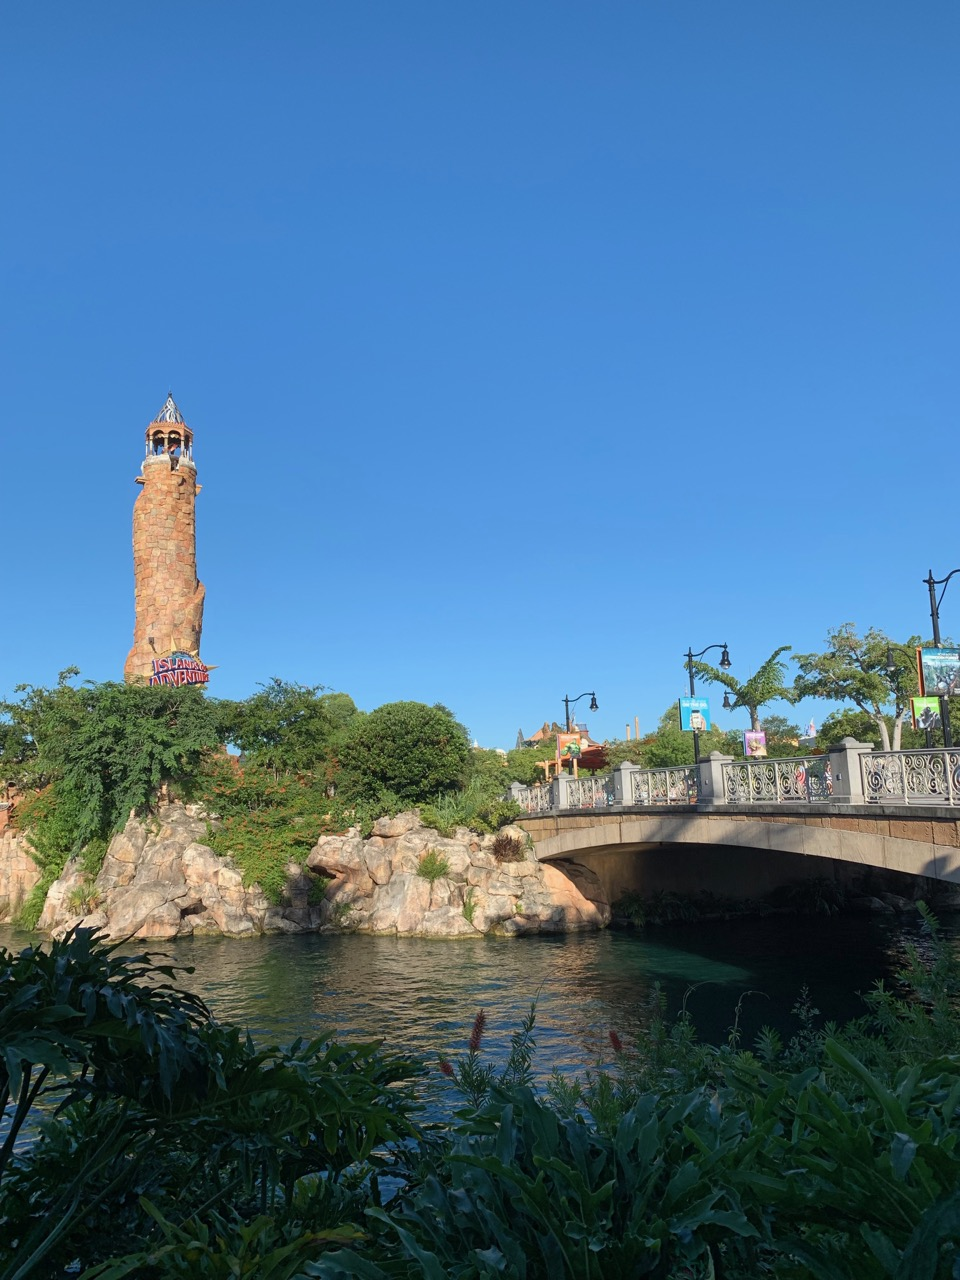 universal orlando summer 2019 trip report part 5 arrival.jpeg